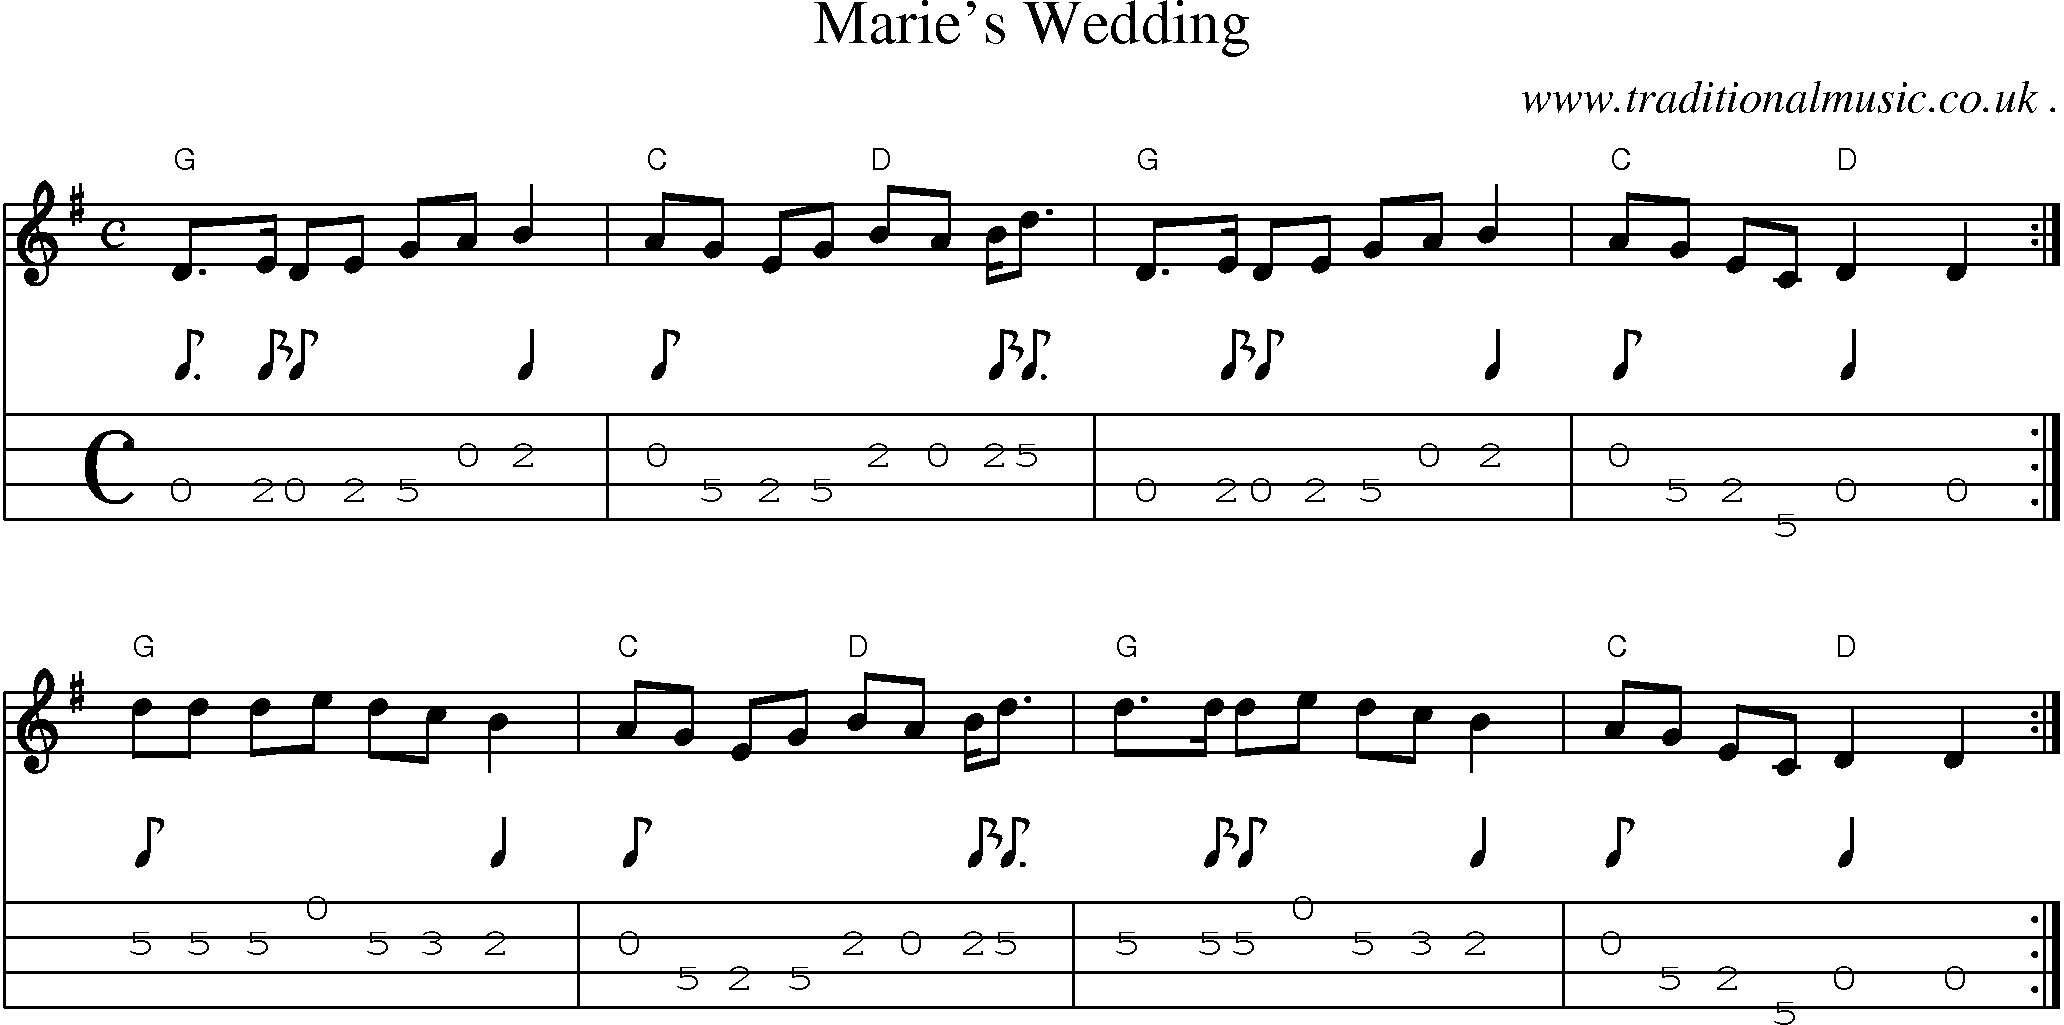 Music Score And Guitar Tabs For Maries Wedding